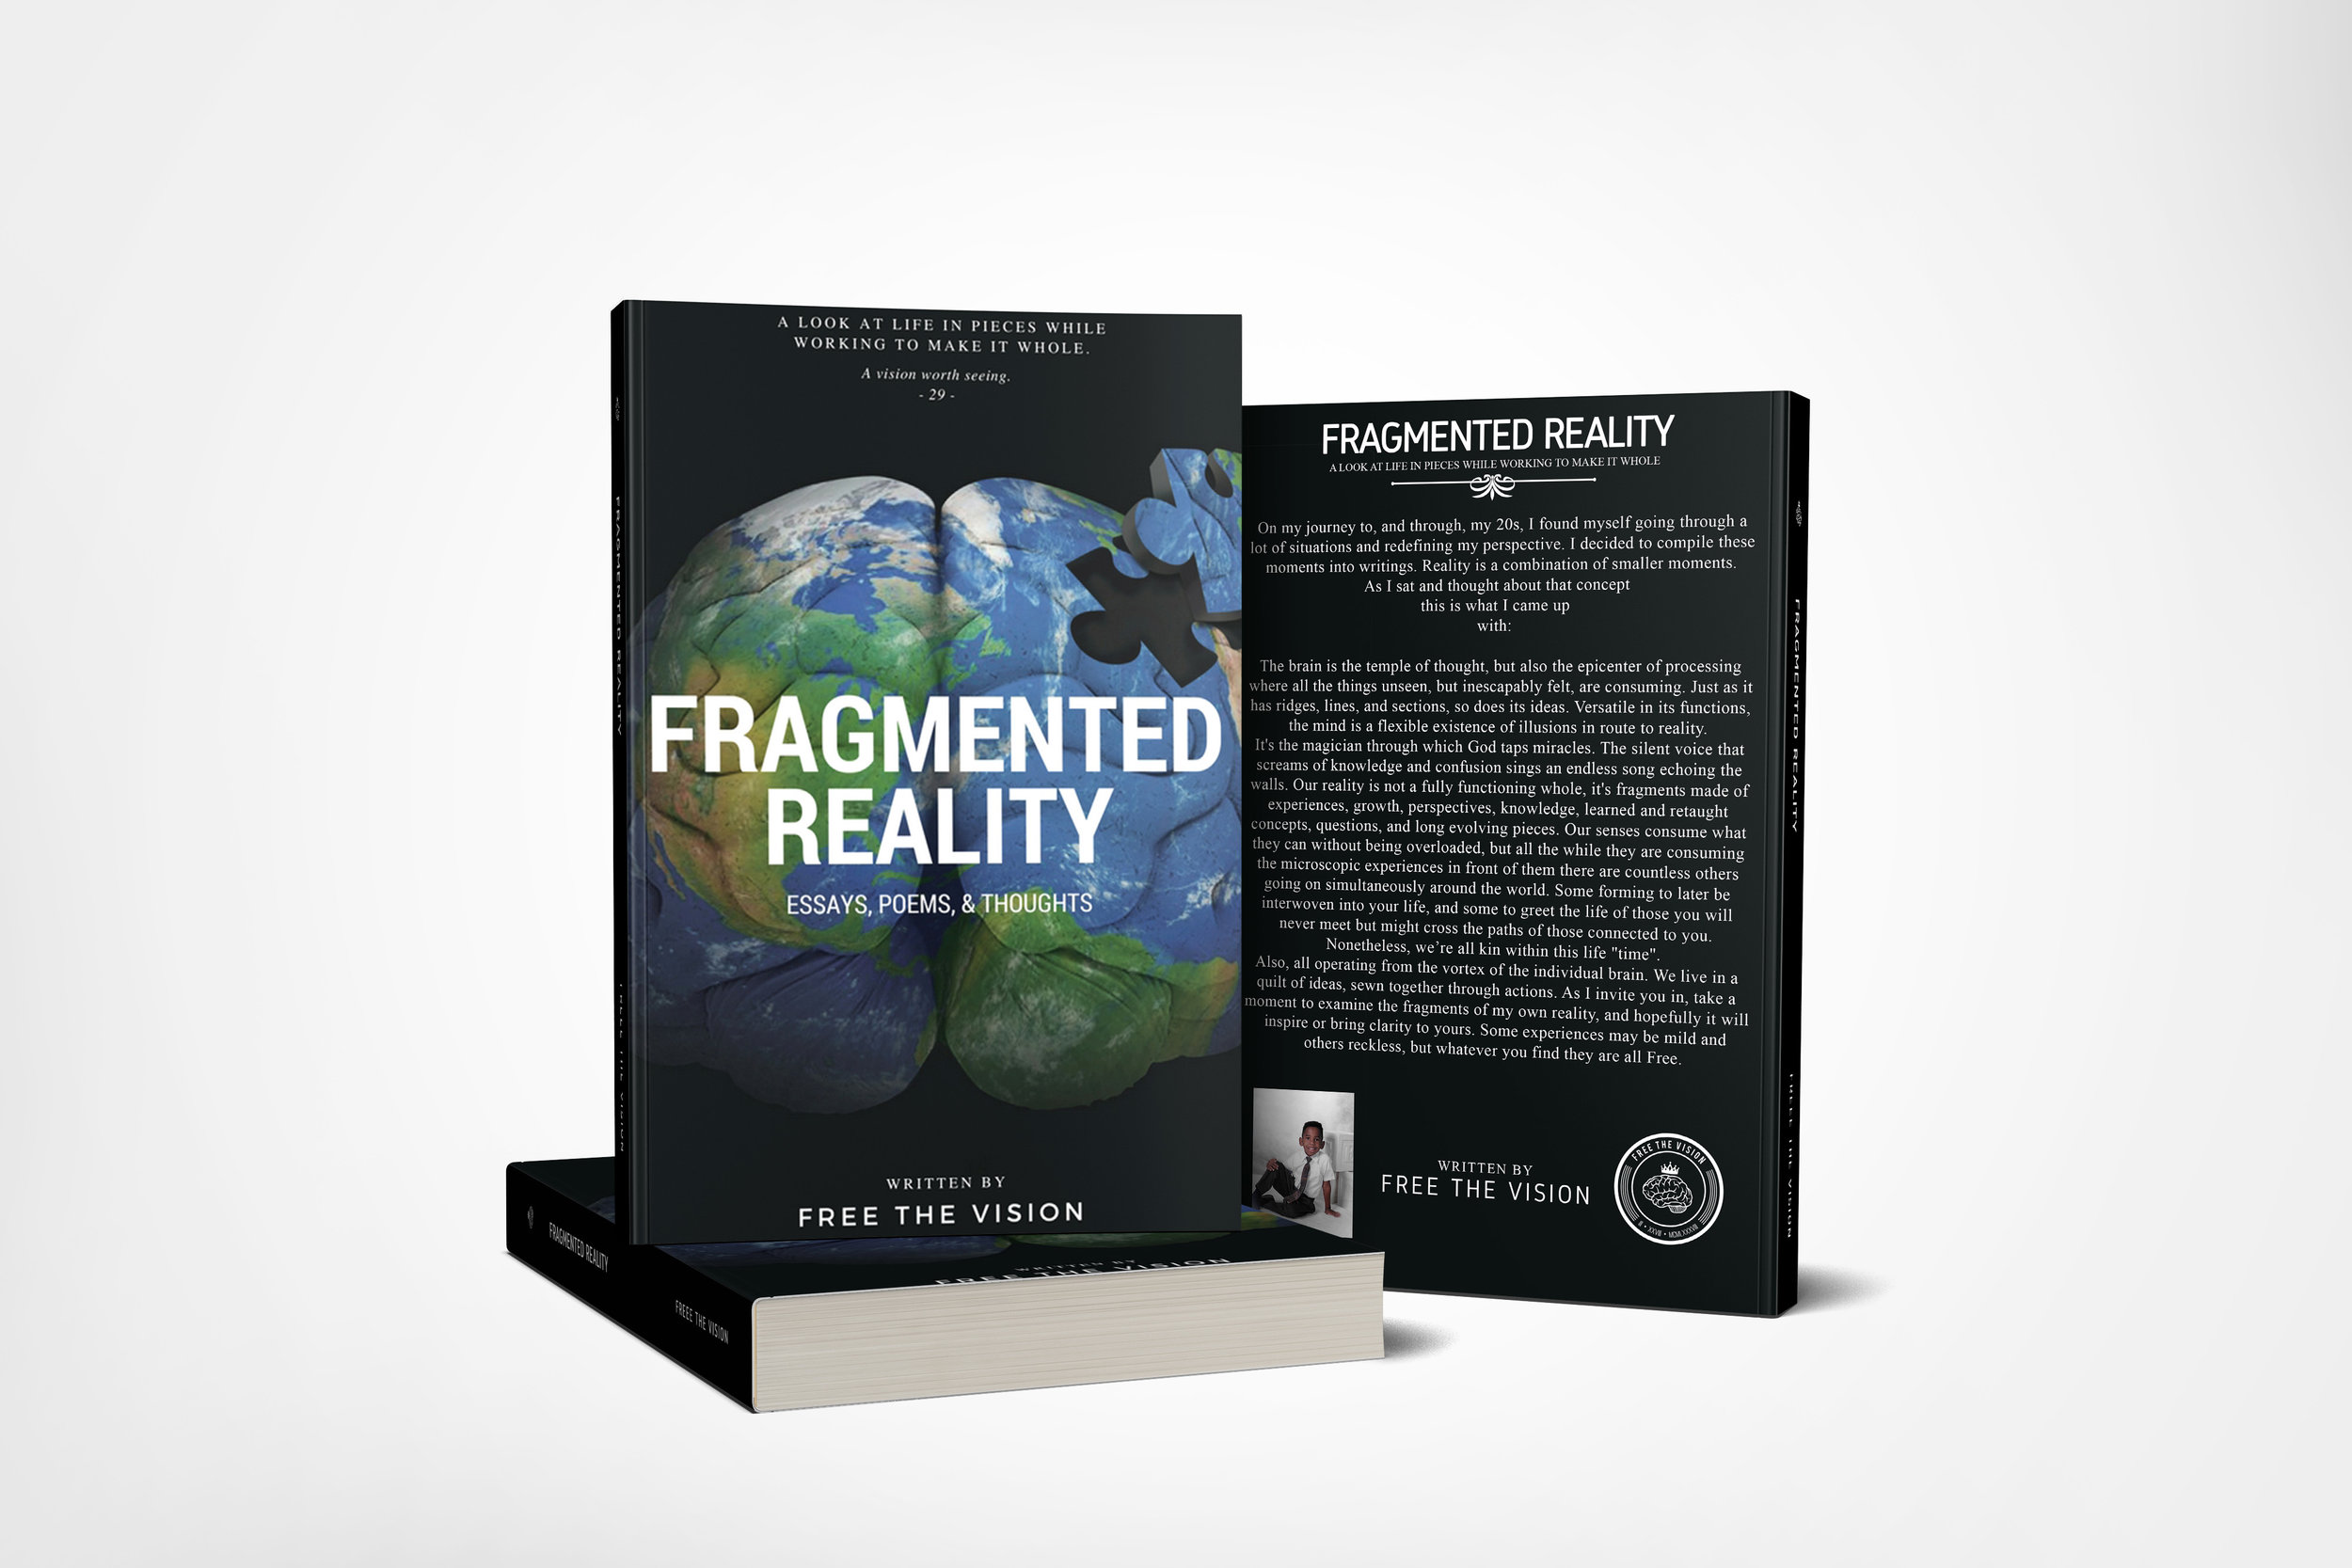 Fragmented Reality - The official first physical book release from Free The Vision, Fragmented Reality is now available. Click here to get your copy.